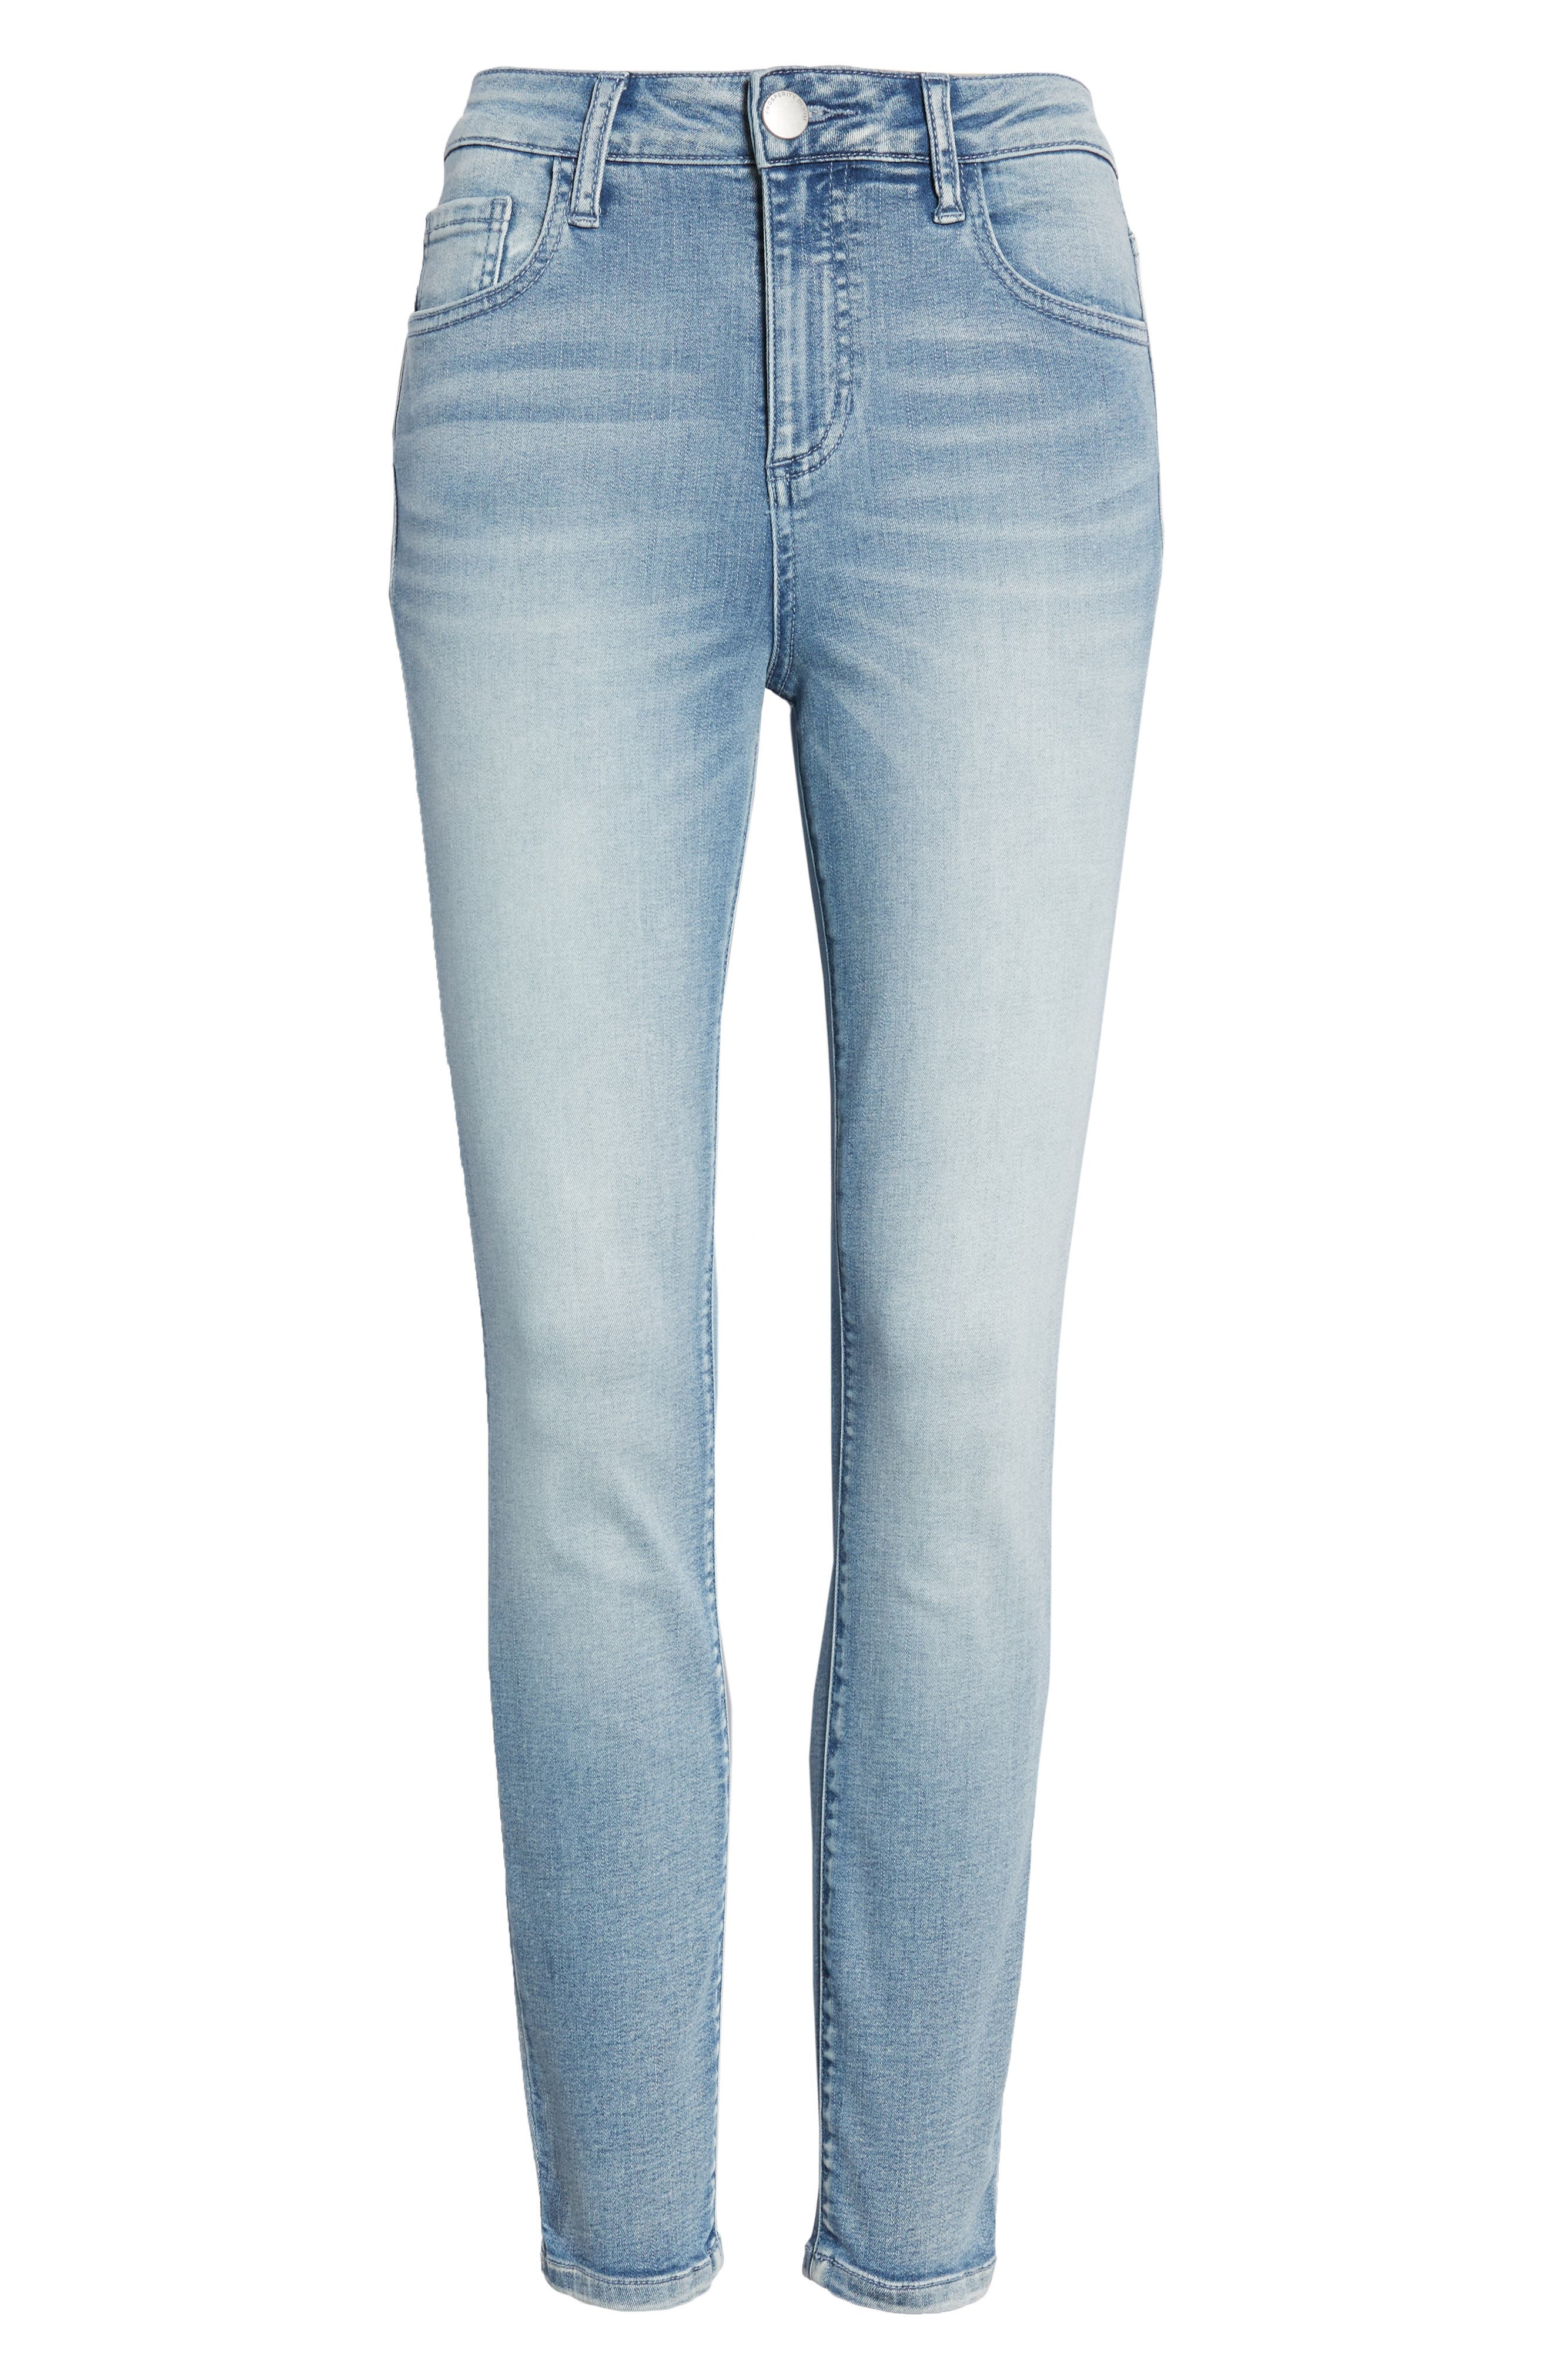 Ankle Skinny Jeans,                             Alternate thumbnail 7, color,                             Justice